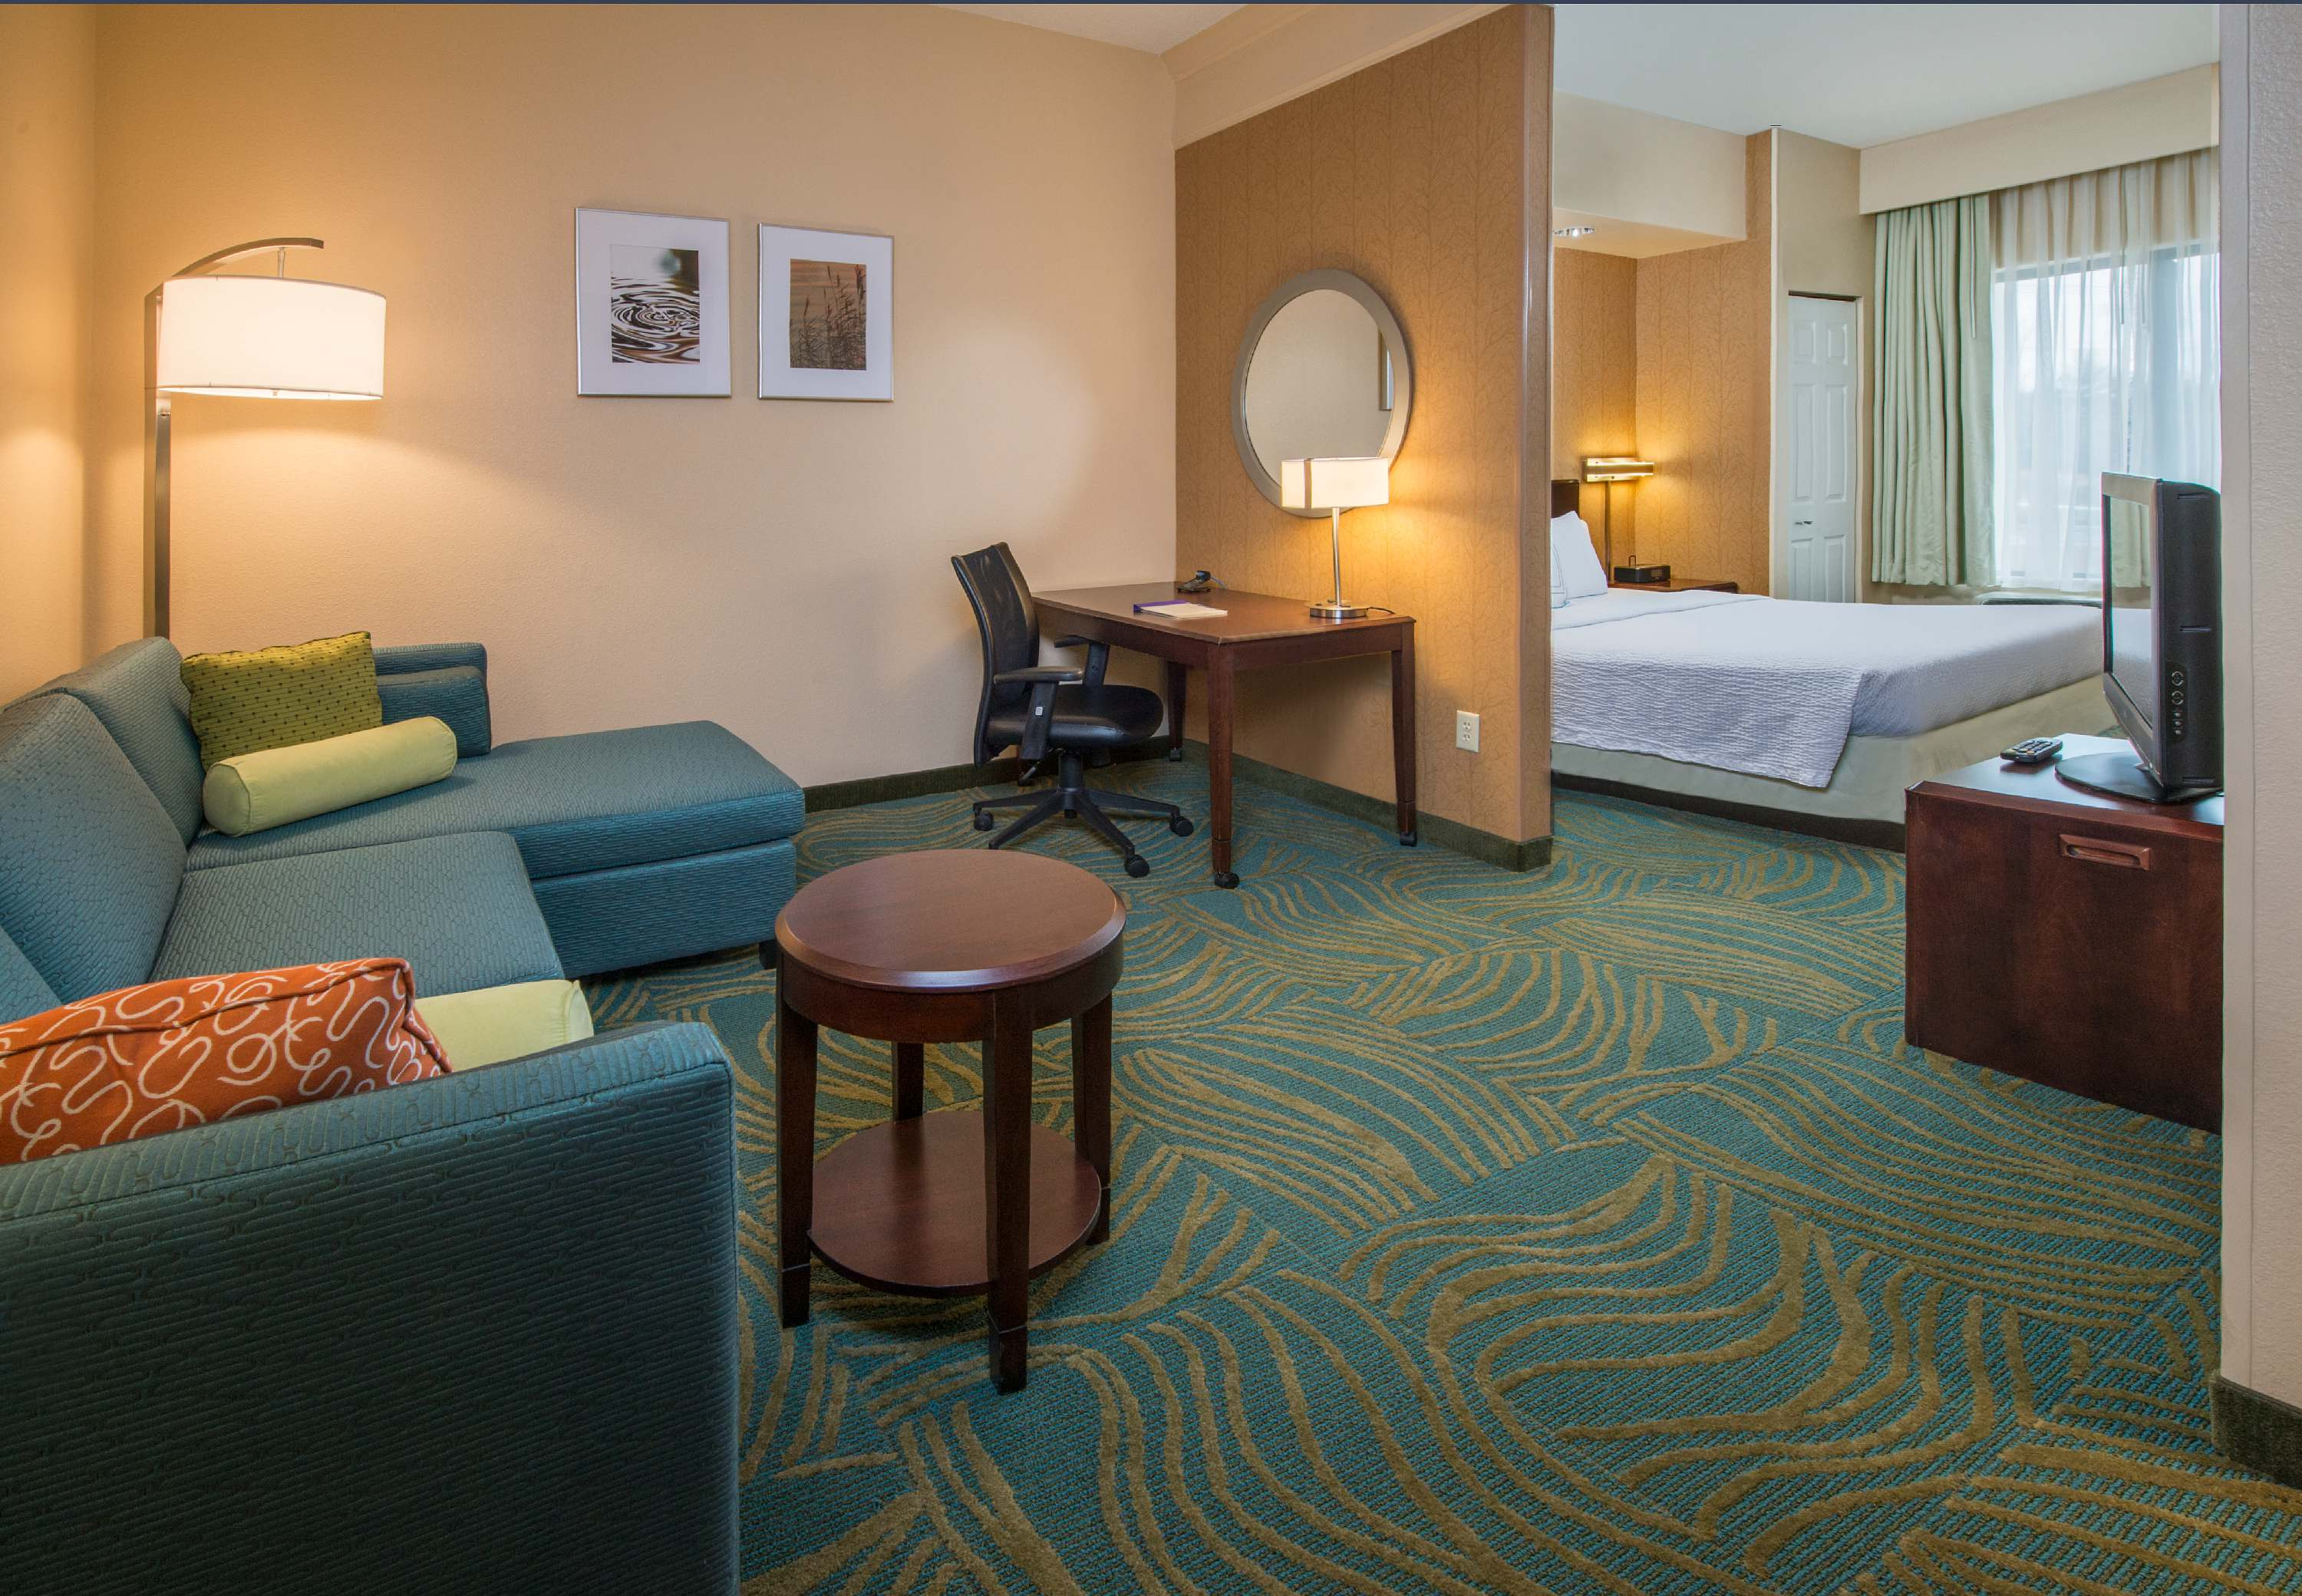 SpringHill Suites by Marriott Edgewood Aberdeen image 7